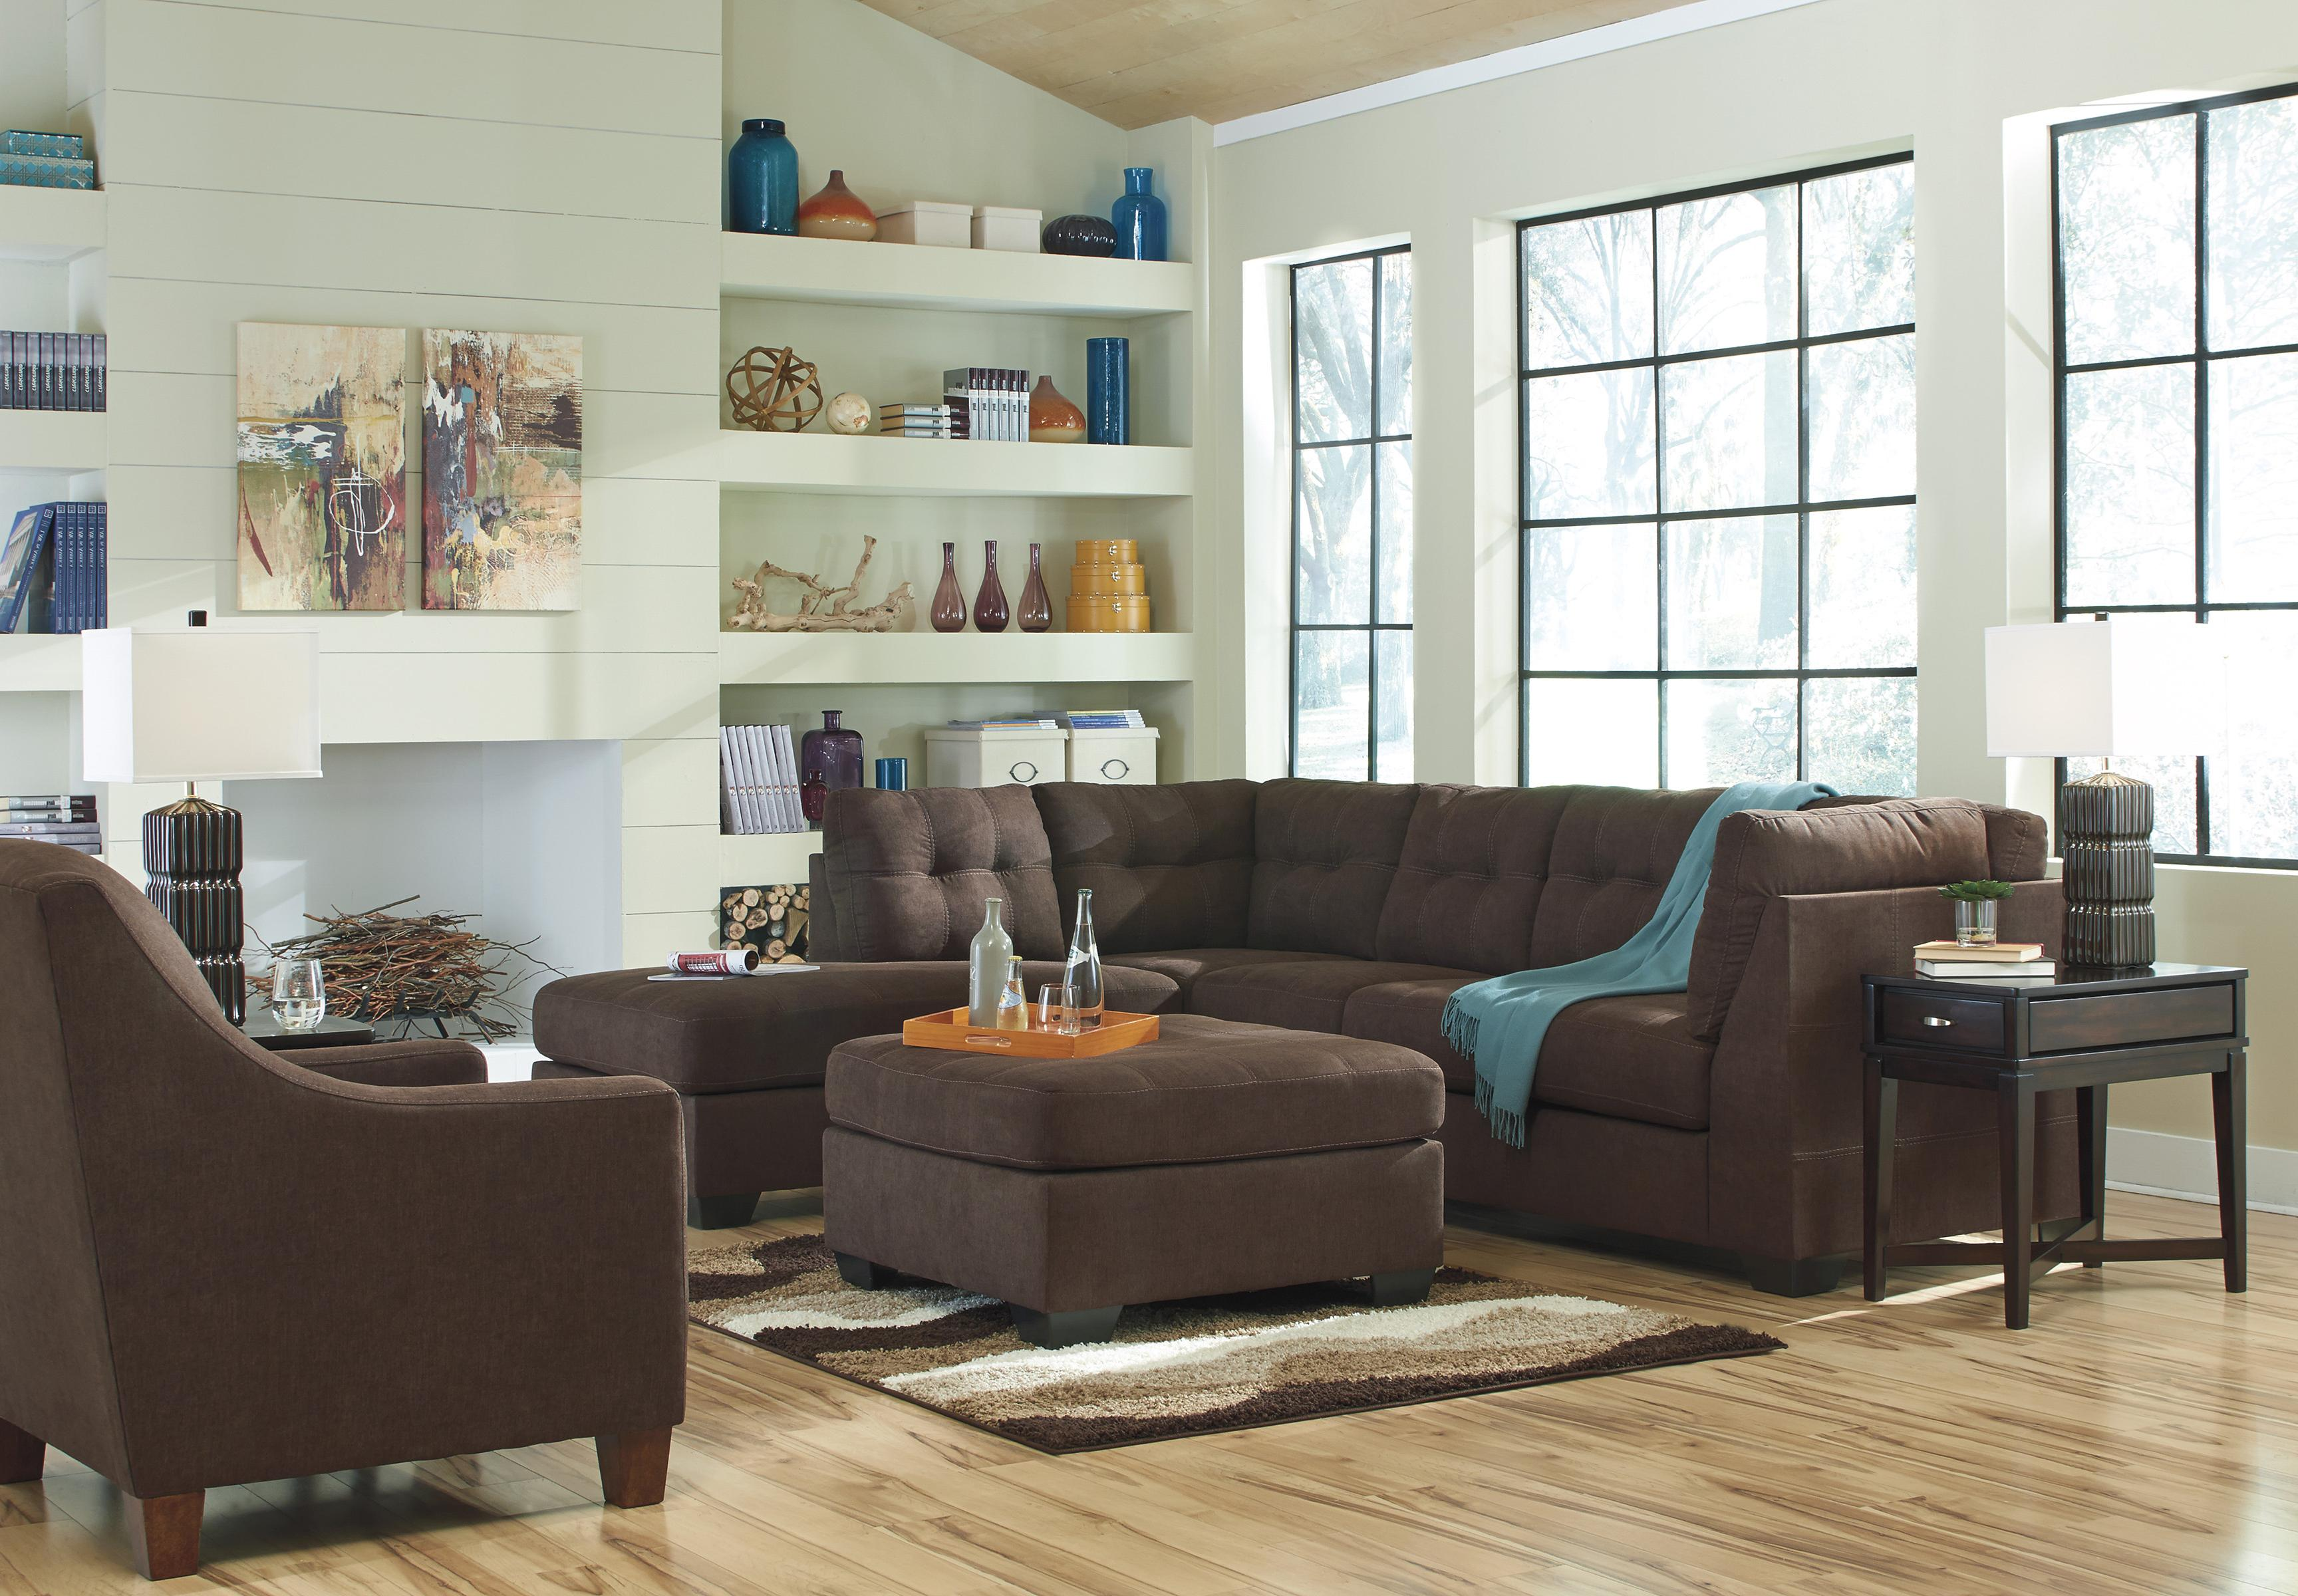 Benchcraft Maier - Walnut Stationary Living Room Group - Item Number: 45201 Living Room Group 4